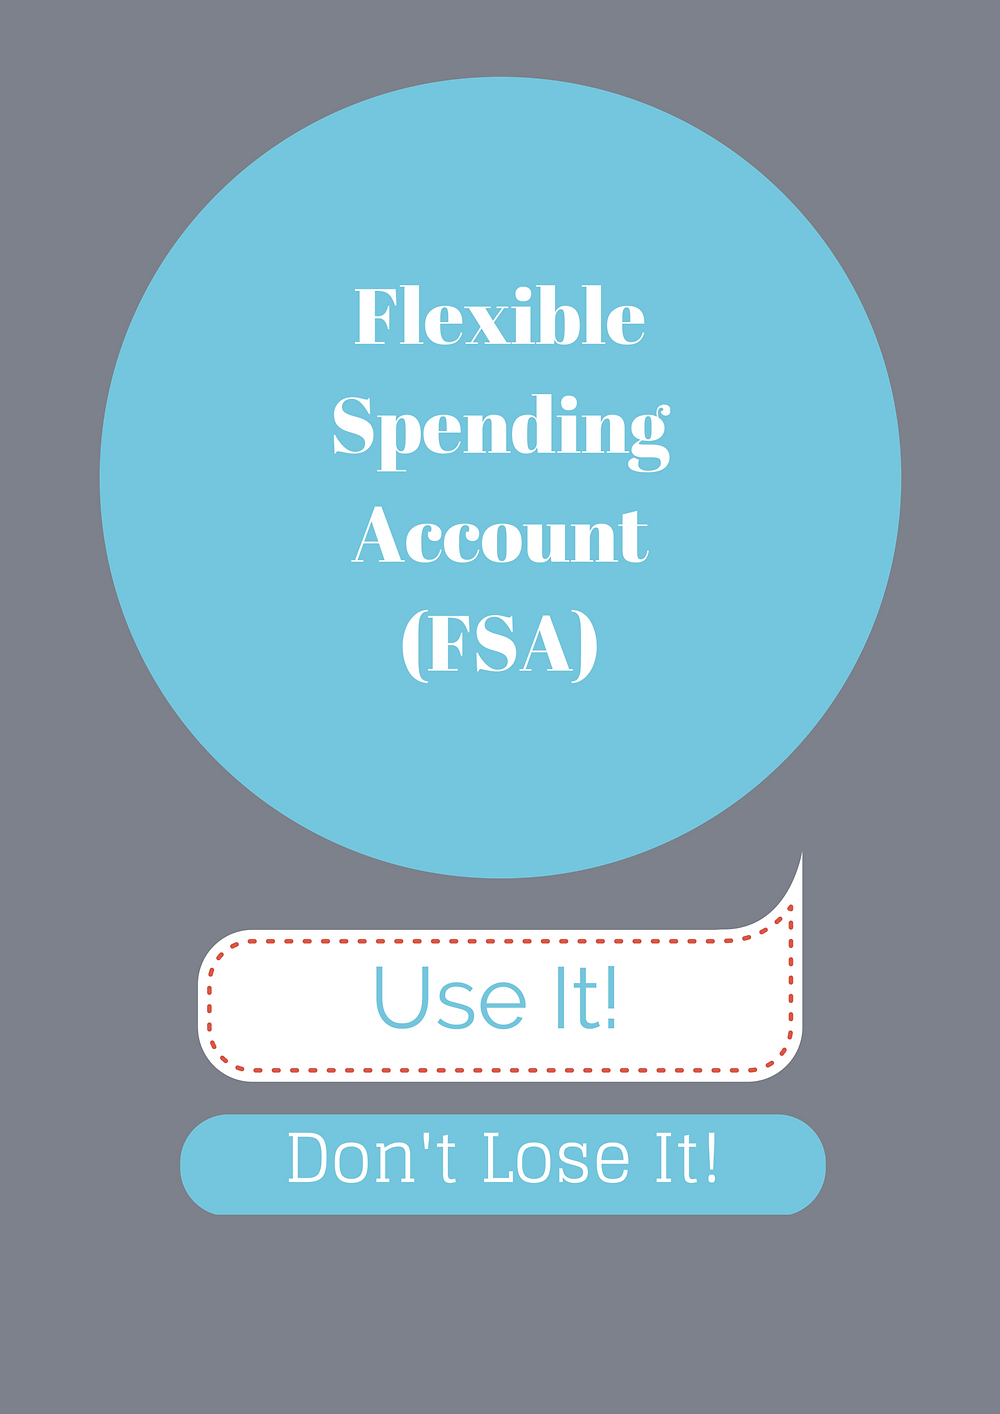 How to Use Your Flexible Savings Account to Save Money and Avoid Wasting Benefits - Read More from Life Hacker